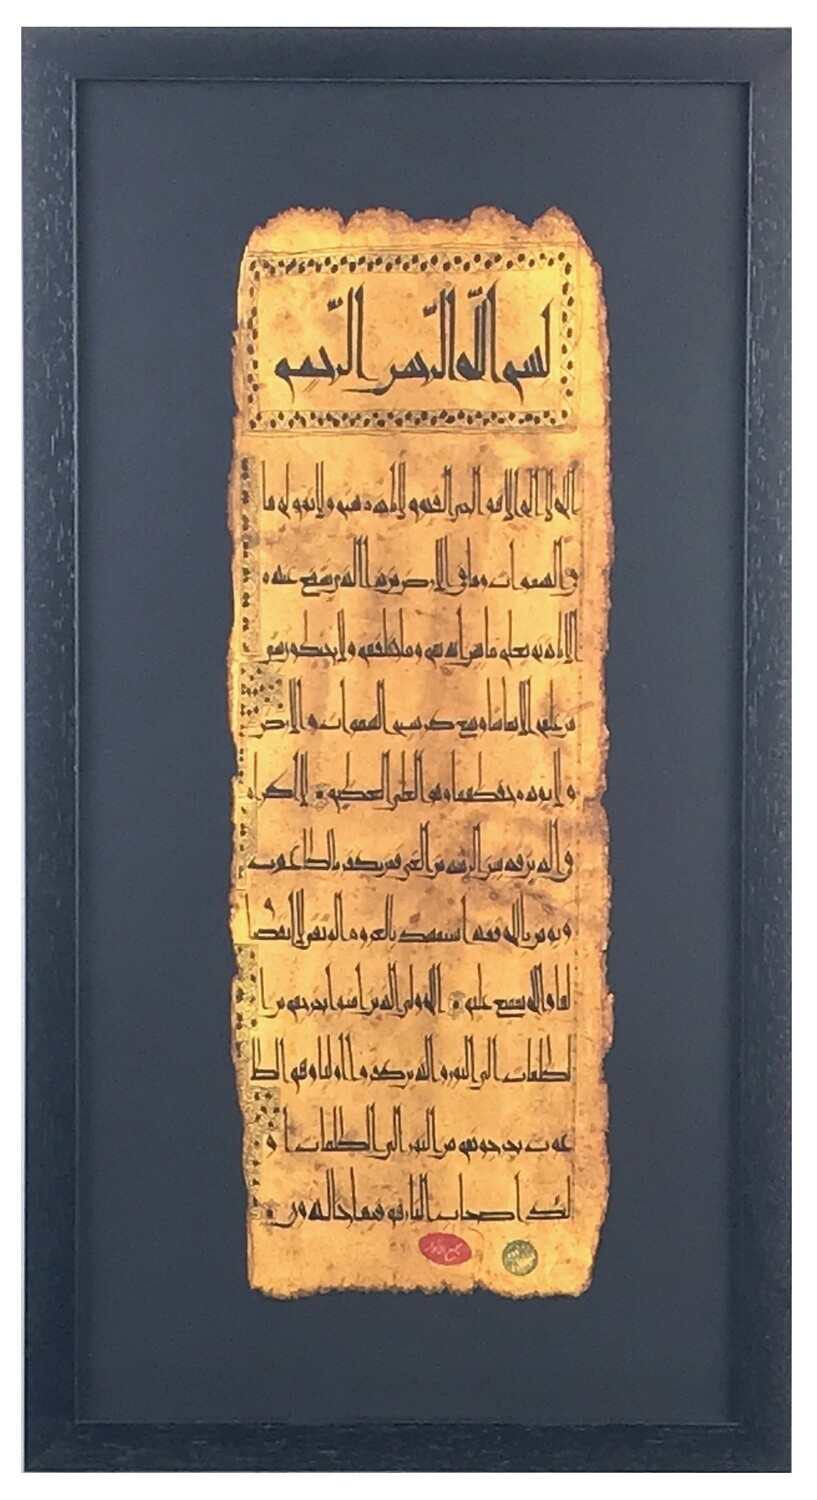 Surah Al-Baqarah Ayats 255-257 Antiqued Manuscript in Black Memory Box Frame